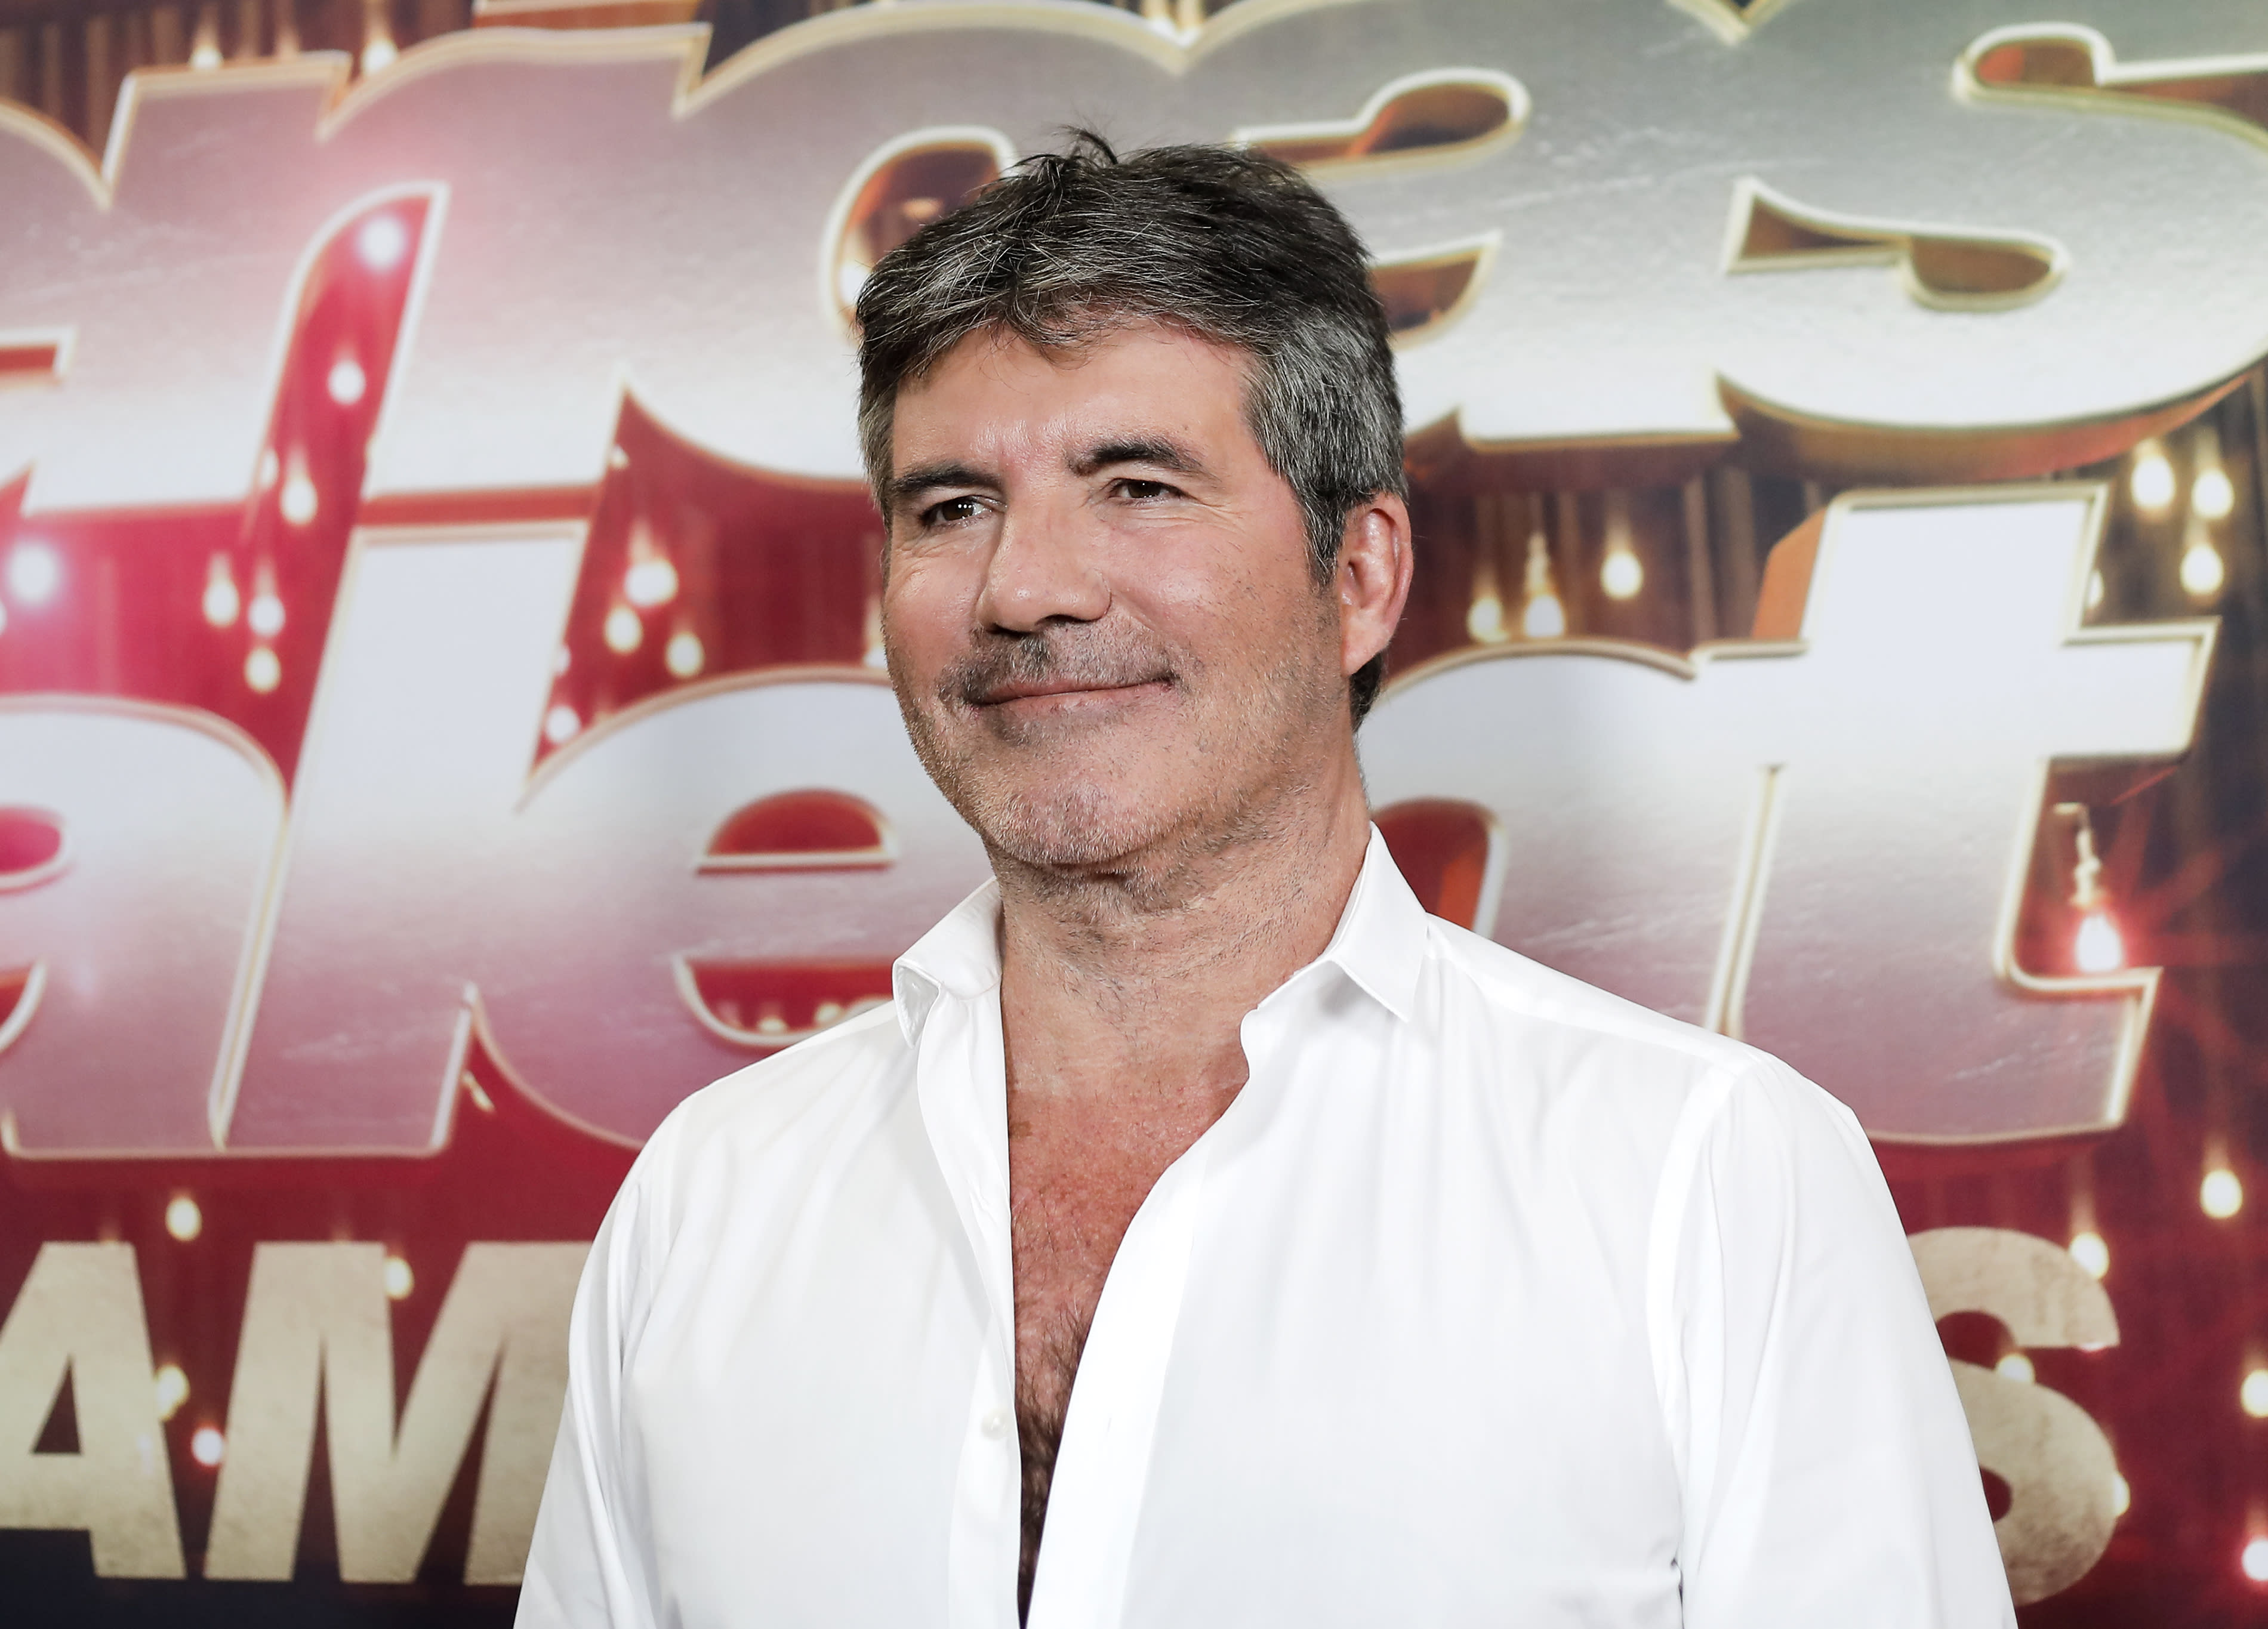 PASADENA, CALIFORNIA - OCTOBER 17: Simon Cowell attends the 'America's Got Talent: The Champions' Finale at Pasadena Civic Auditorium on October 17, 2018 in Pasadena, California. (Photo by Tibrina Hobson/WireImage,)